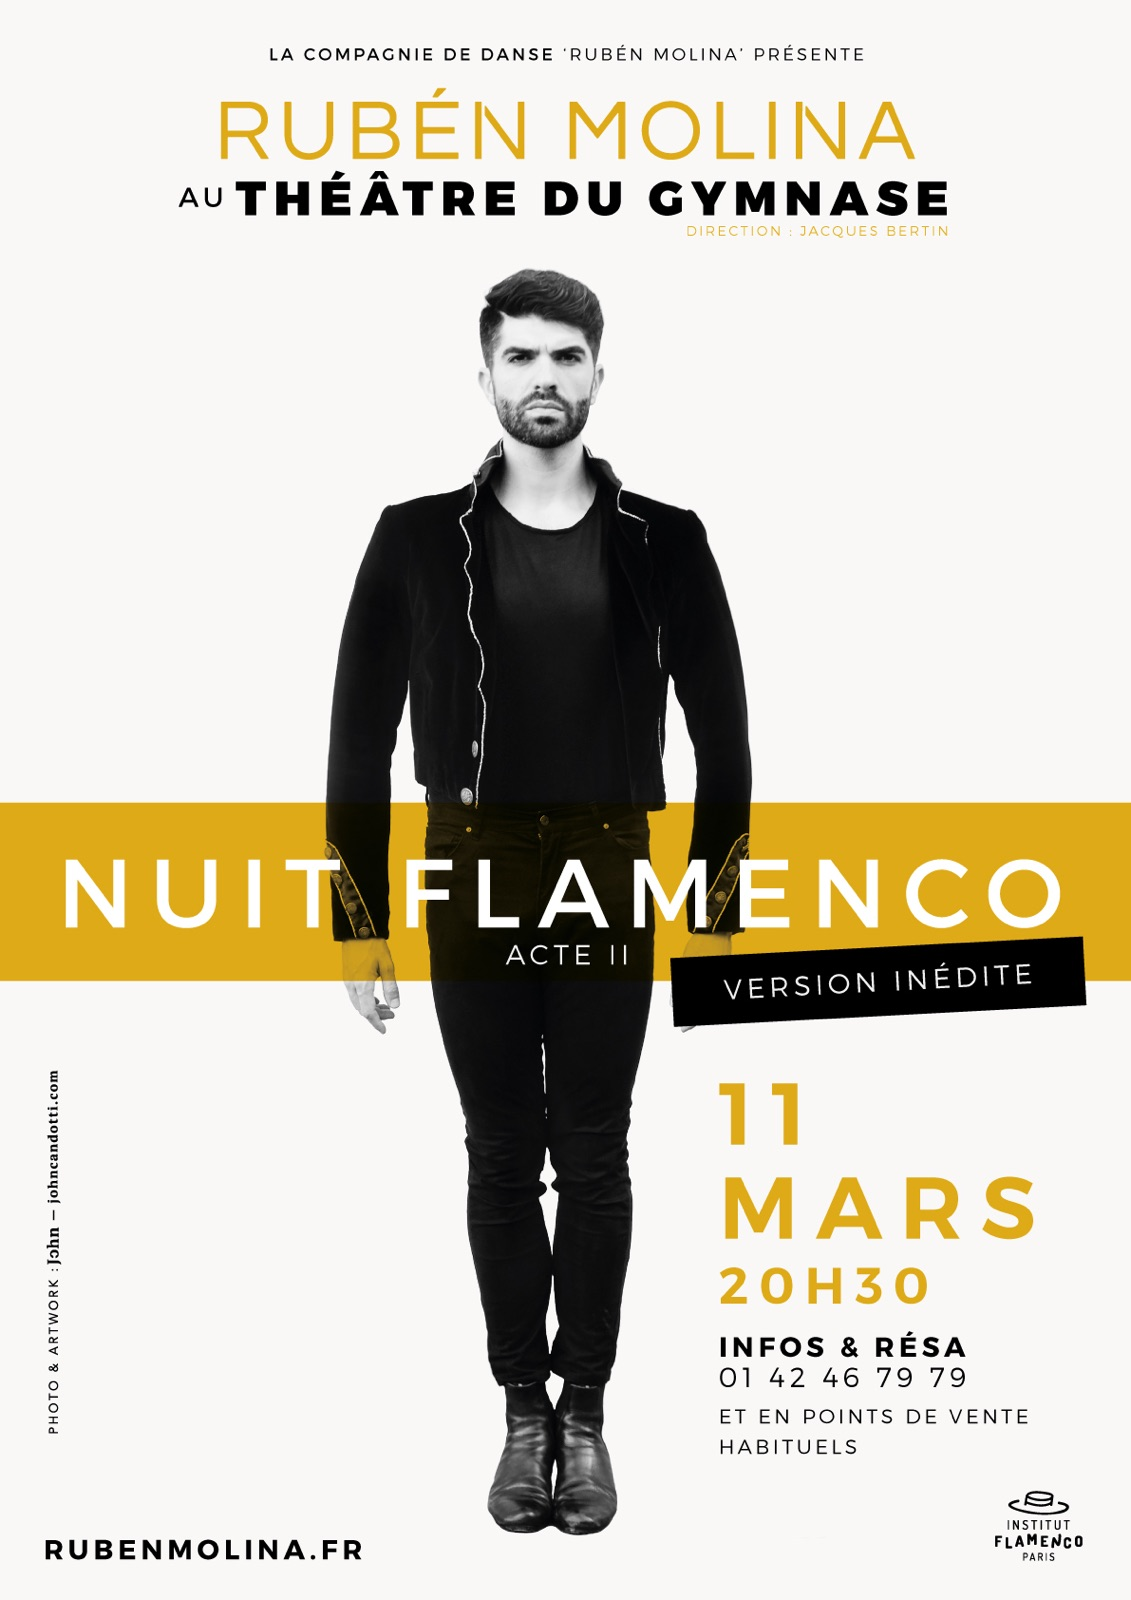 SPECTACLE FLAMENCO PARIS RUBEN MOLINA NUIT FLAMENCO ACTE II